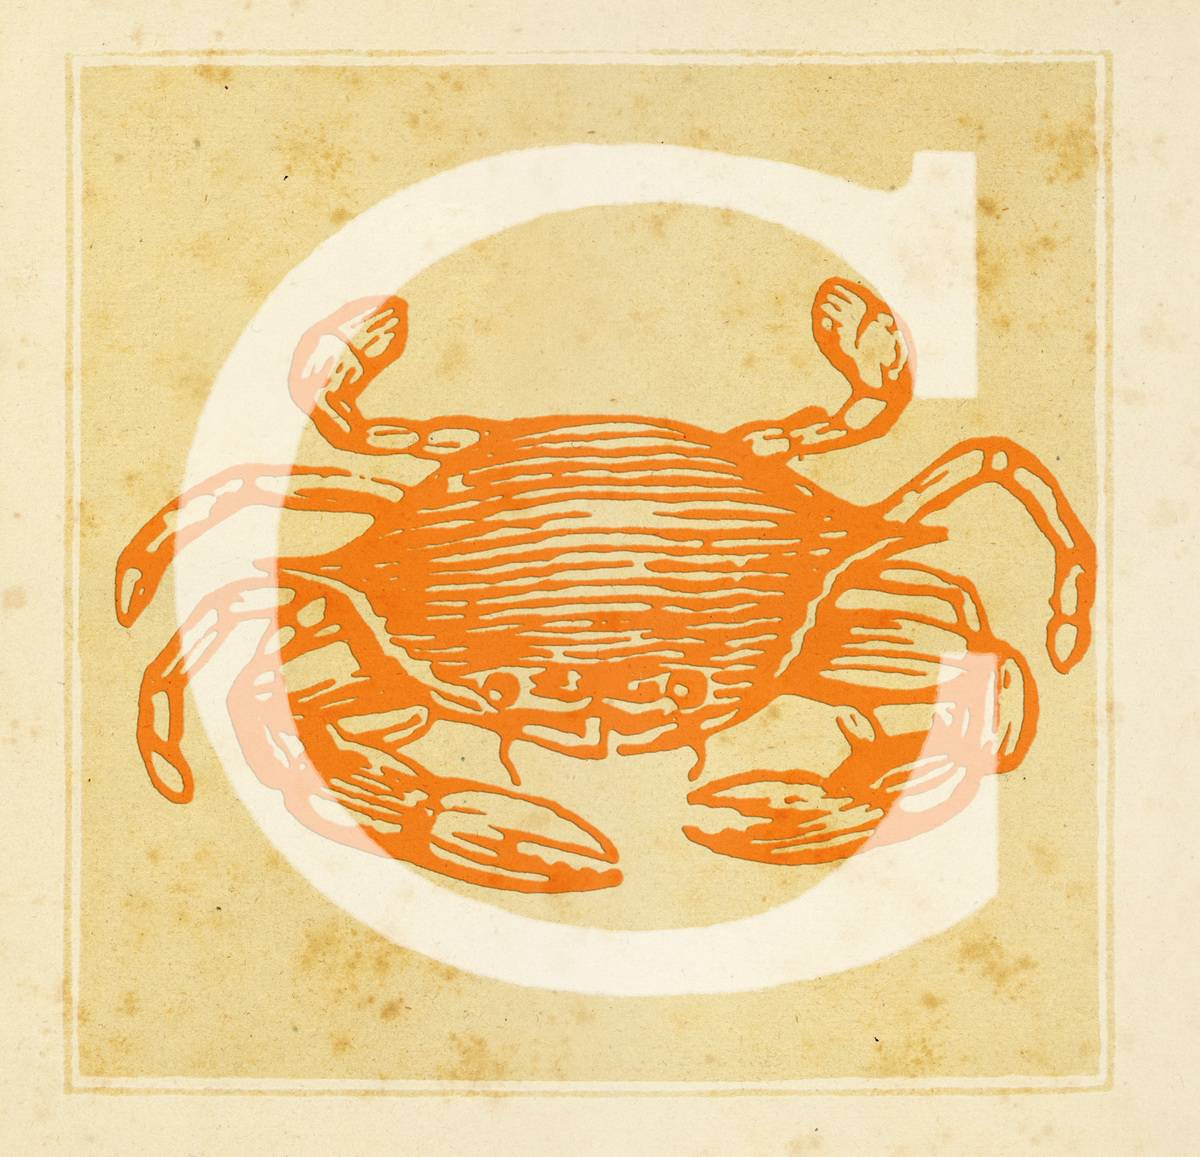 Capital letter C with Zodiacal Cancer Sign - The Crab